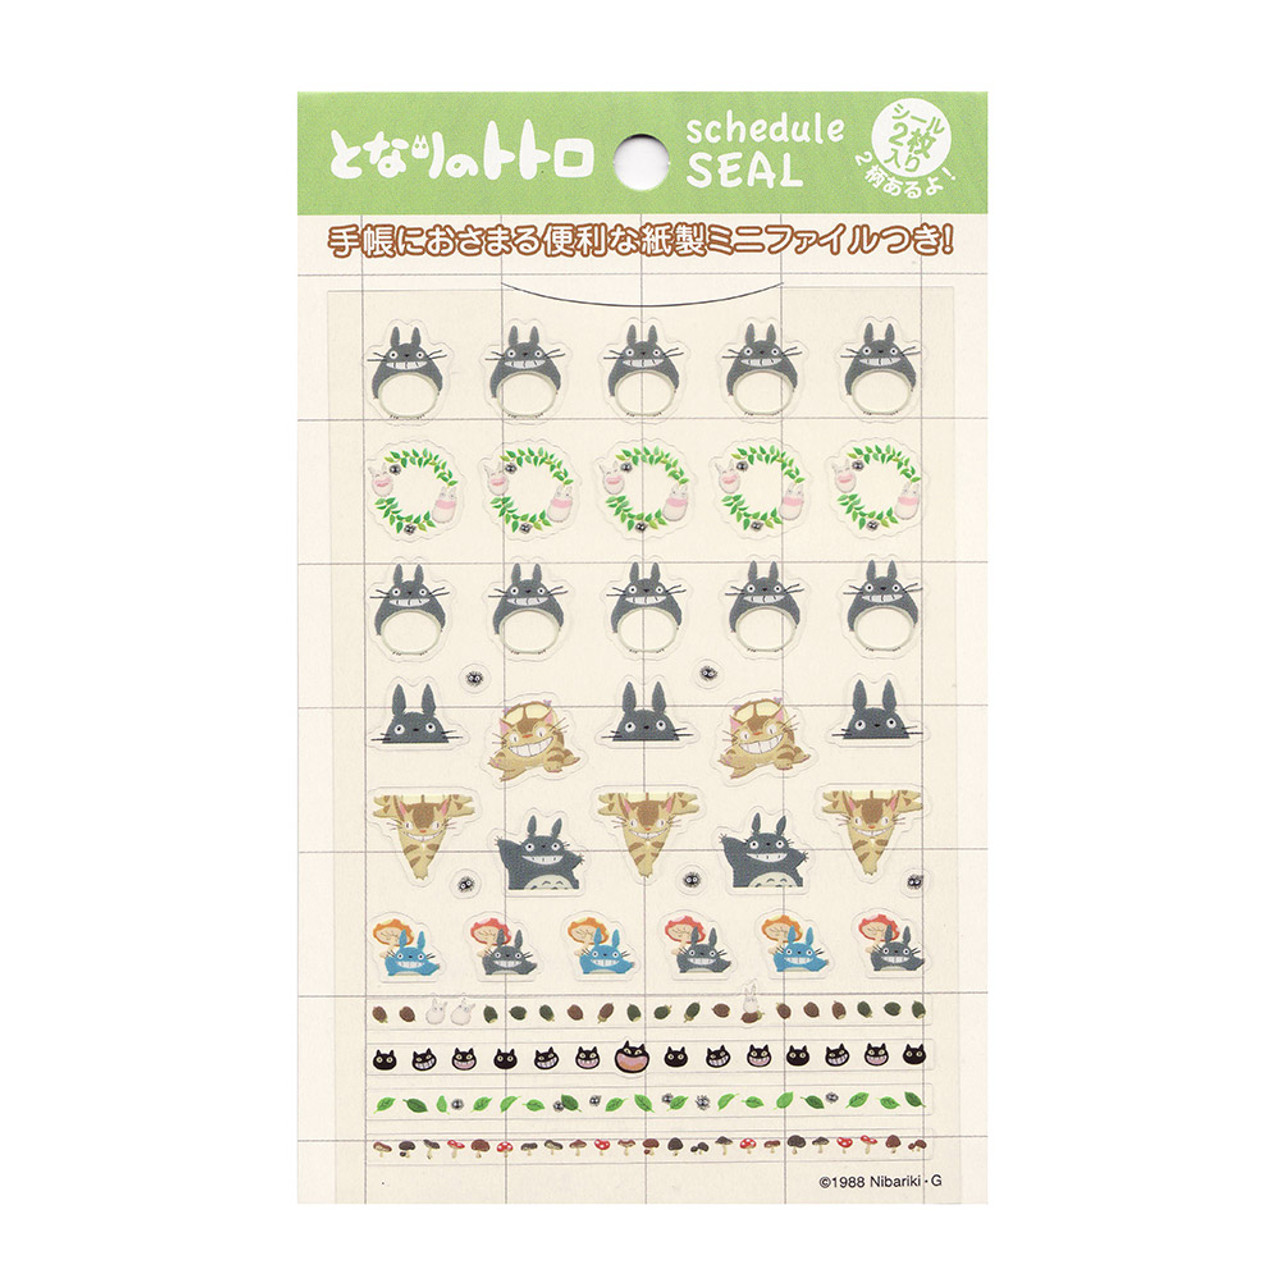 Totoro Schedule Seal 2 Style Sticker Sheet ( Front View )